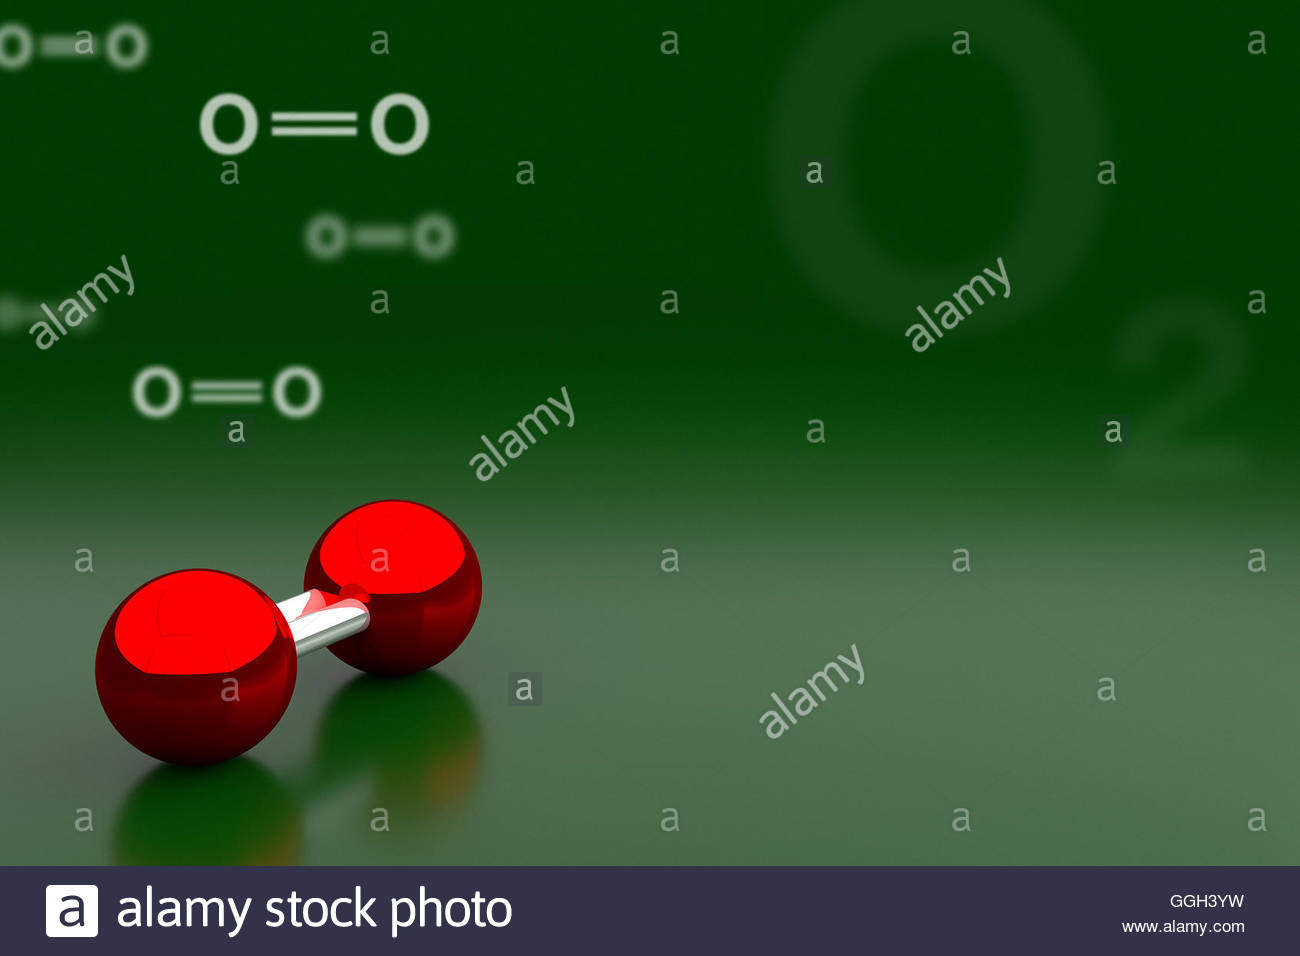 3D rendering of oxygen or O2 molecule background Stock Photo 1300x956